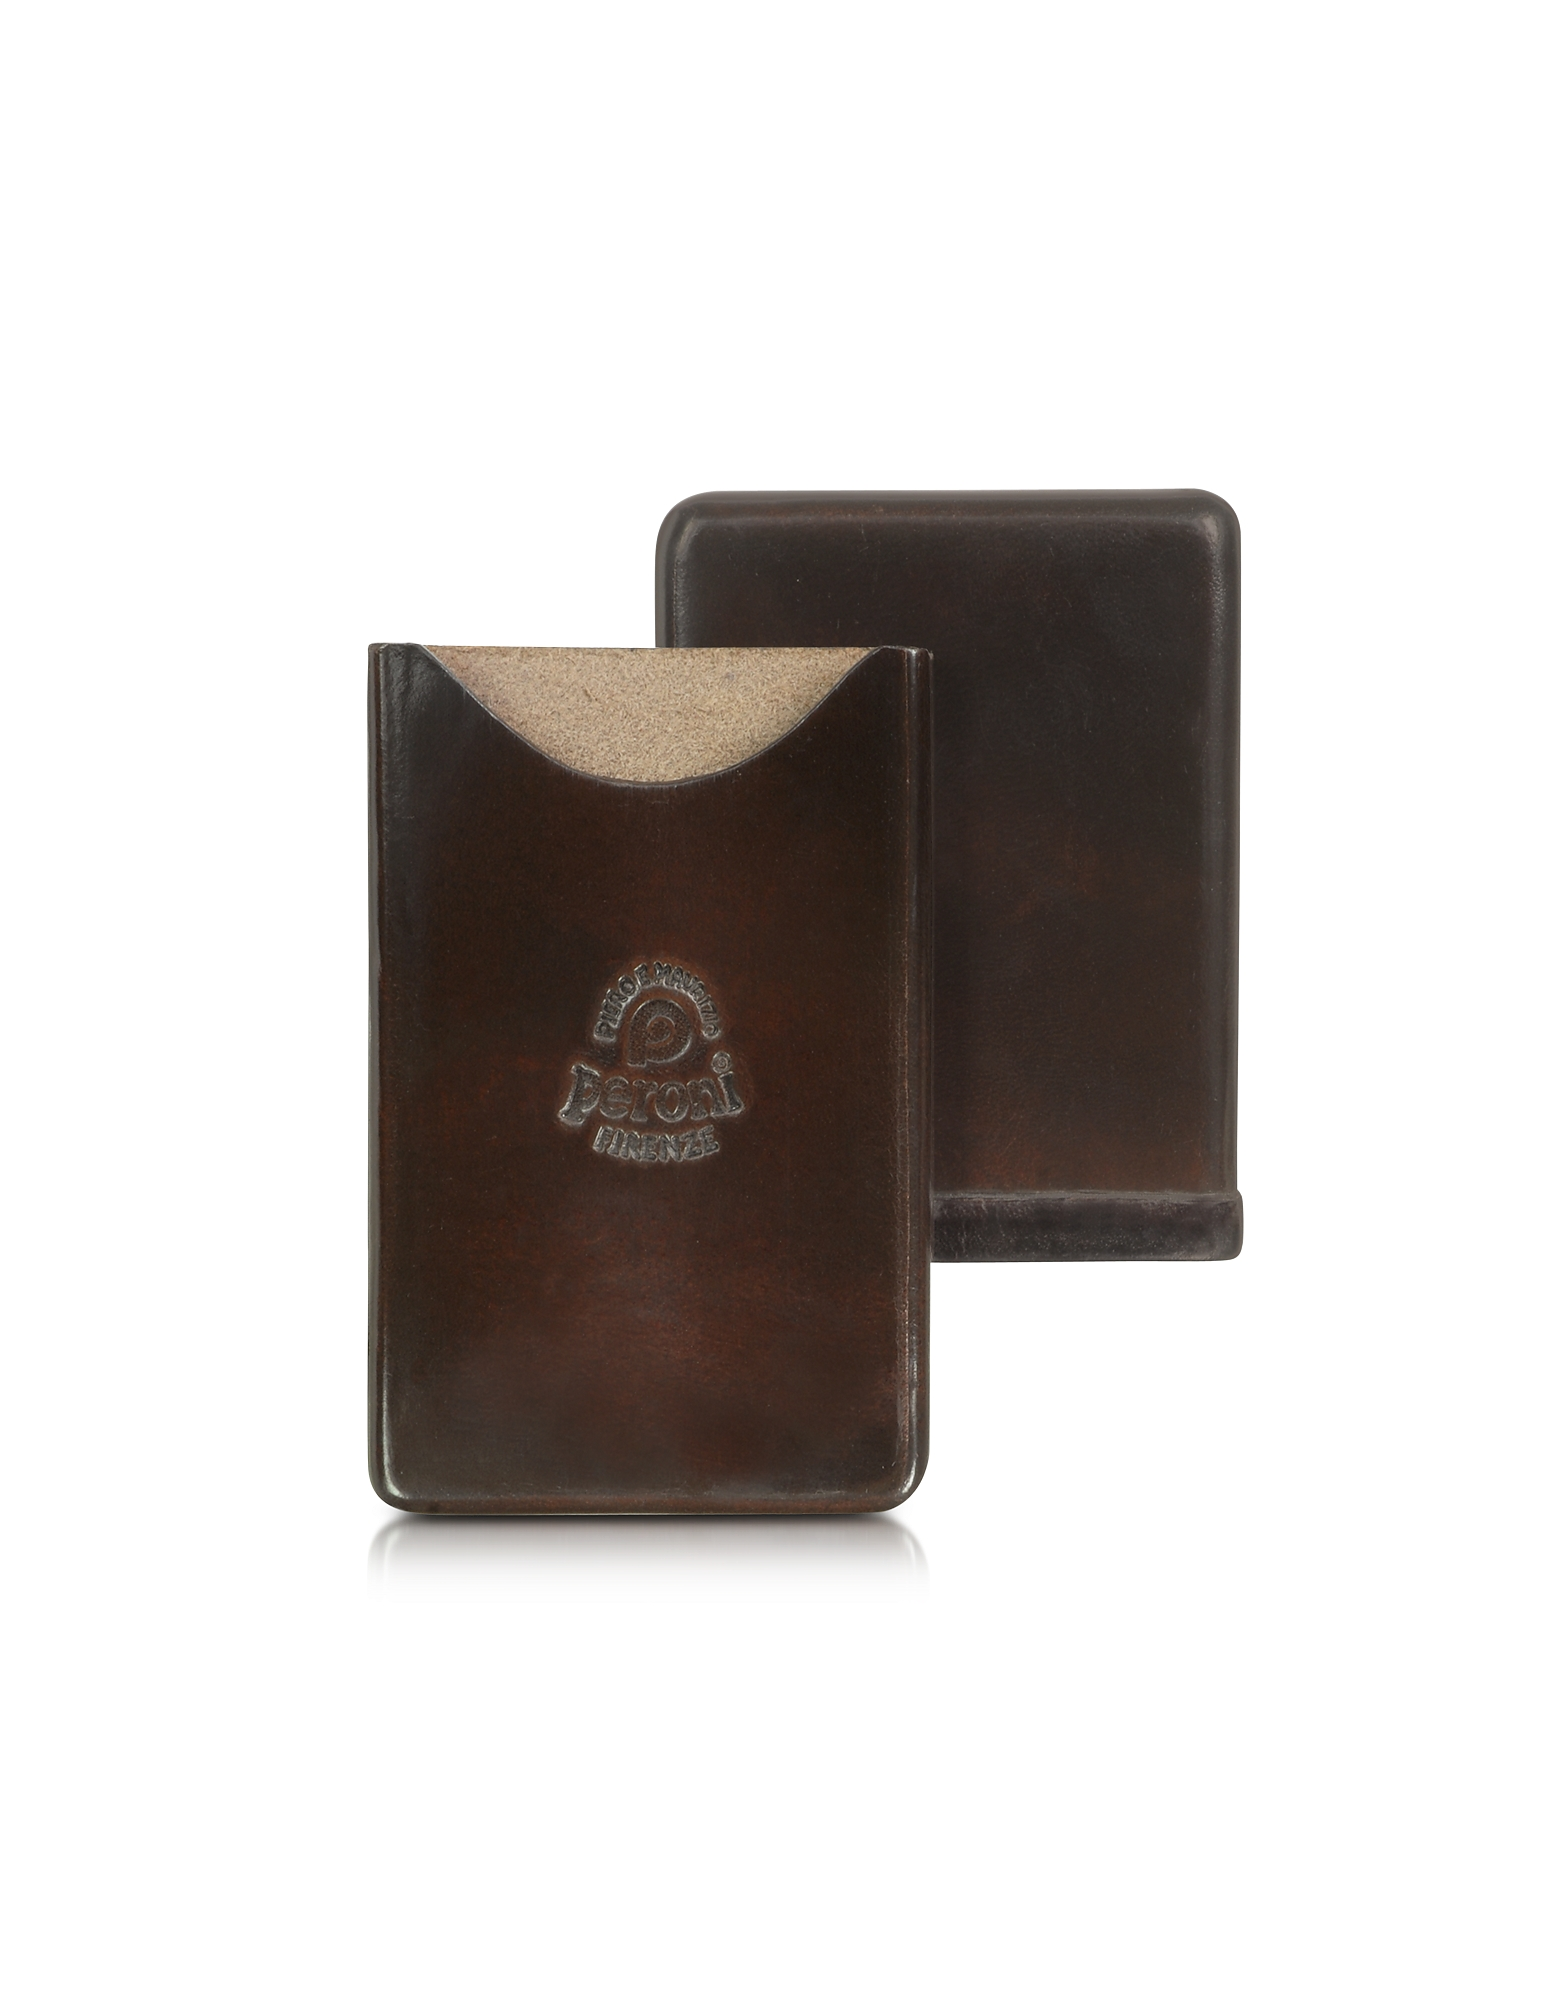 Peroni Small Leather Goods, Genuine Leather Card Case